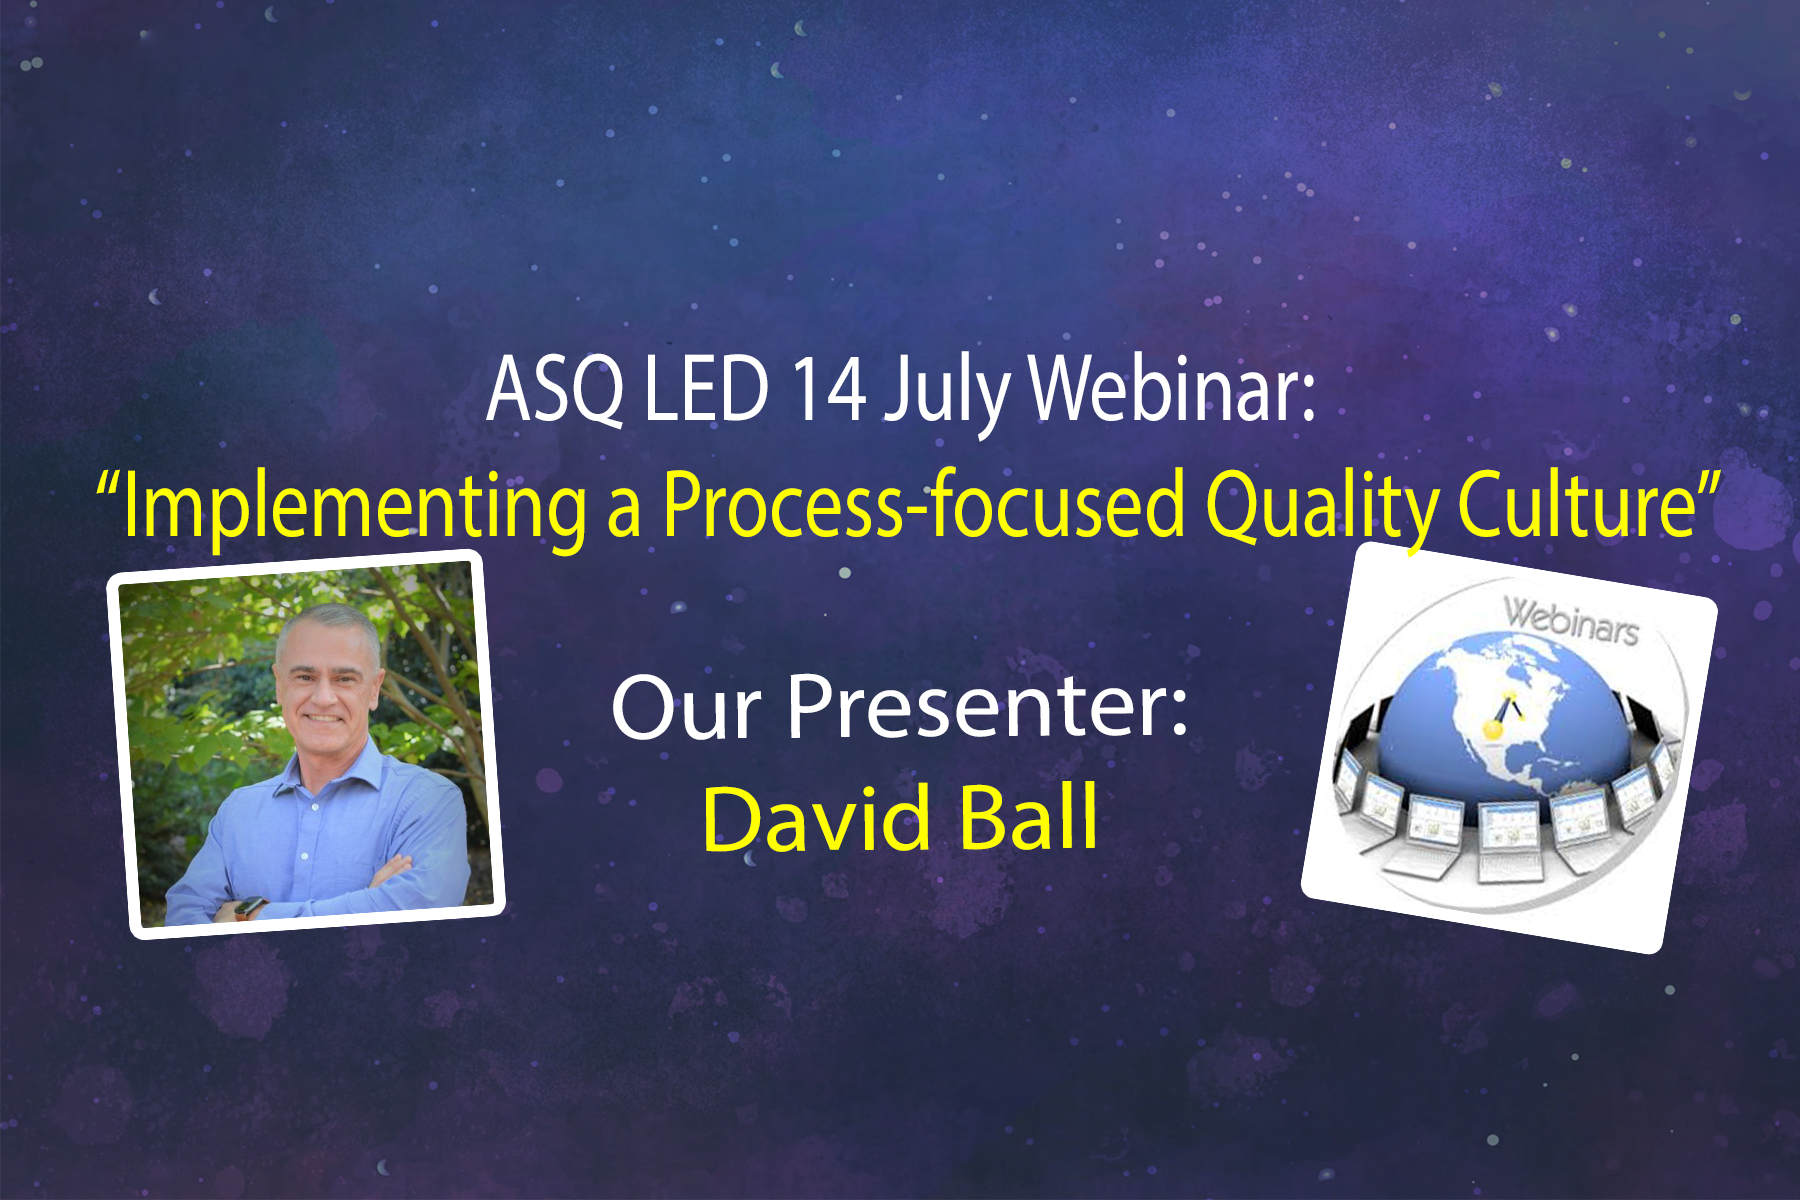 """ASQ LED 14 July 2021 Webinar - """"Implementing a Process-Focused Quality Culture"""" with David Ball 3260"""